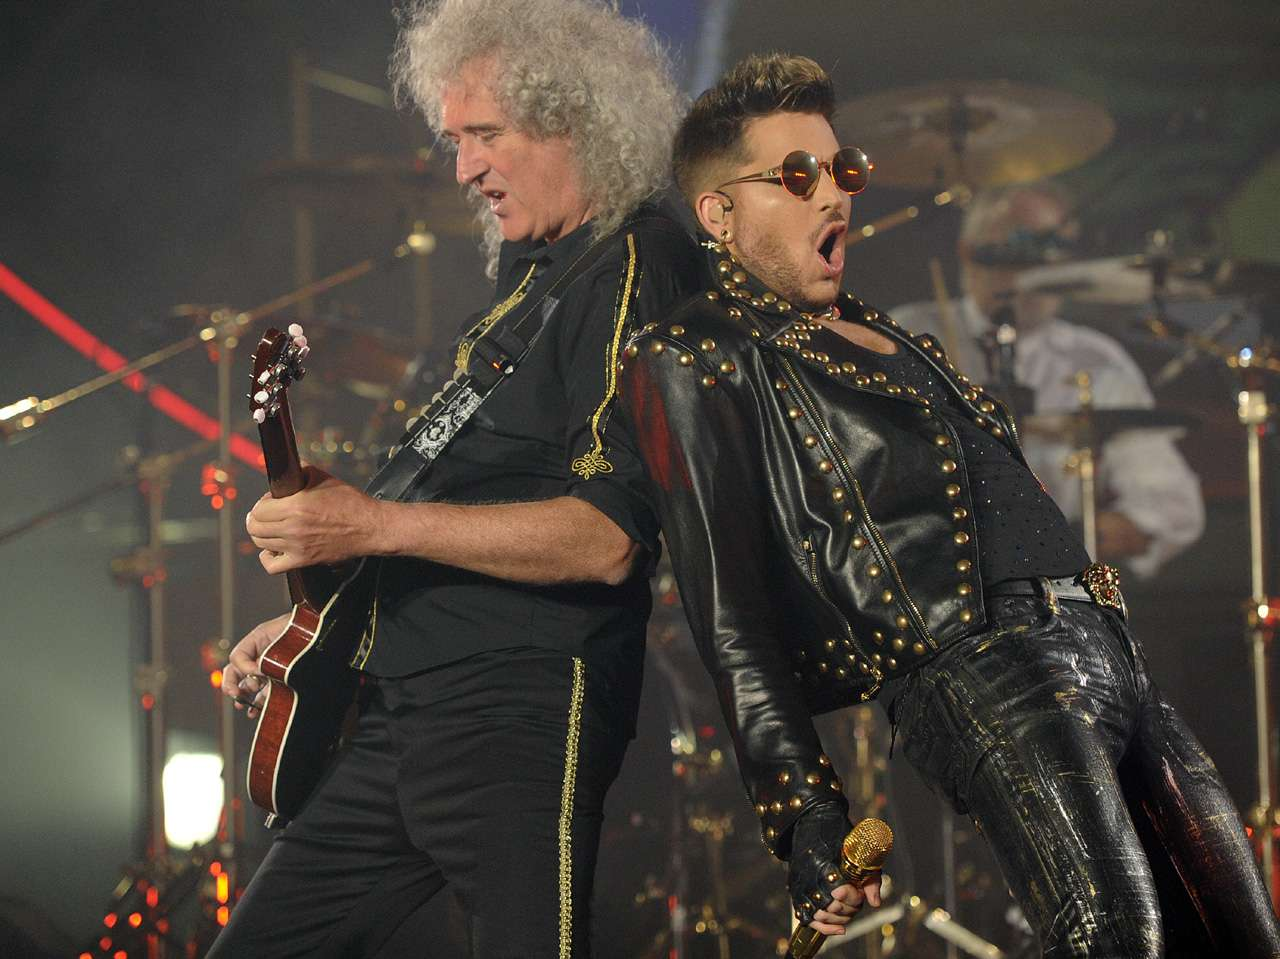 brian may Foto: Getty Images